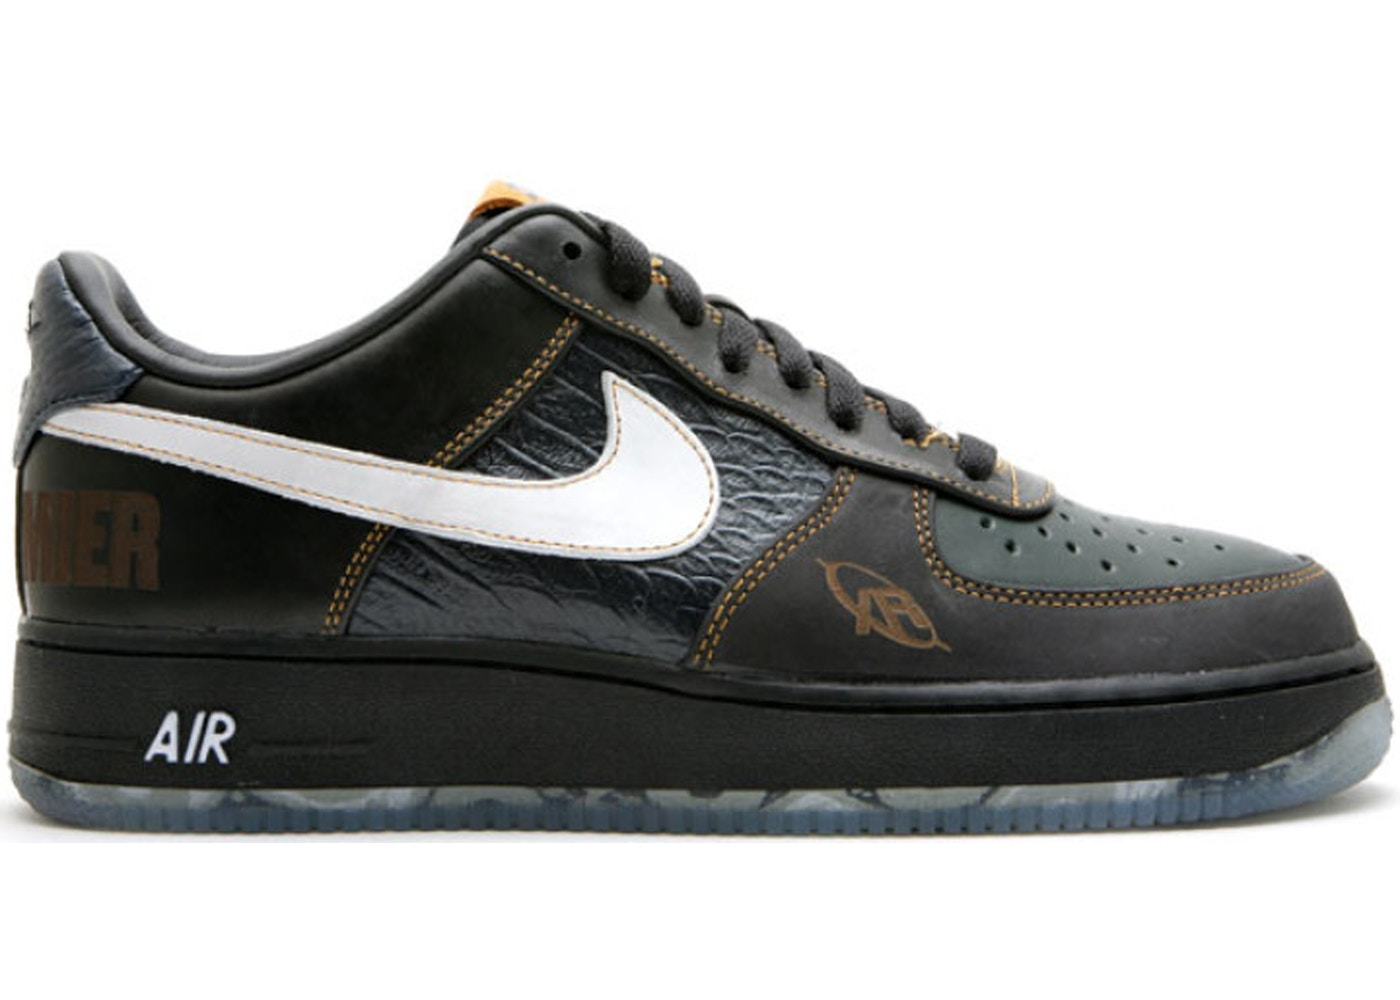 ナイキ NIKE エアー スニーカー 【 AIR FORCE 1 LOW DJ PREMIER BLACK WHITEBLACK SPRUCEOBSIDIAN 】 メンズ 送料無料